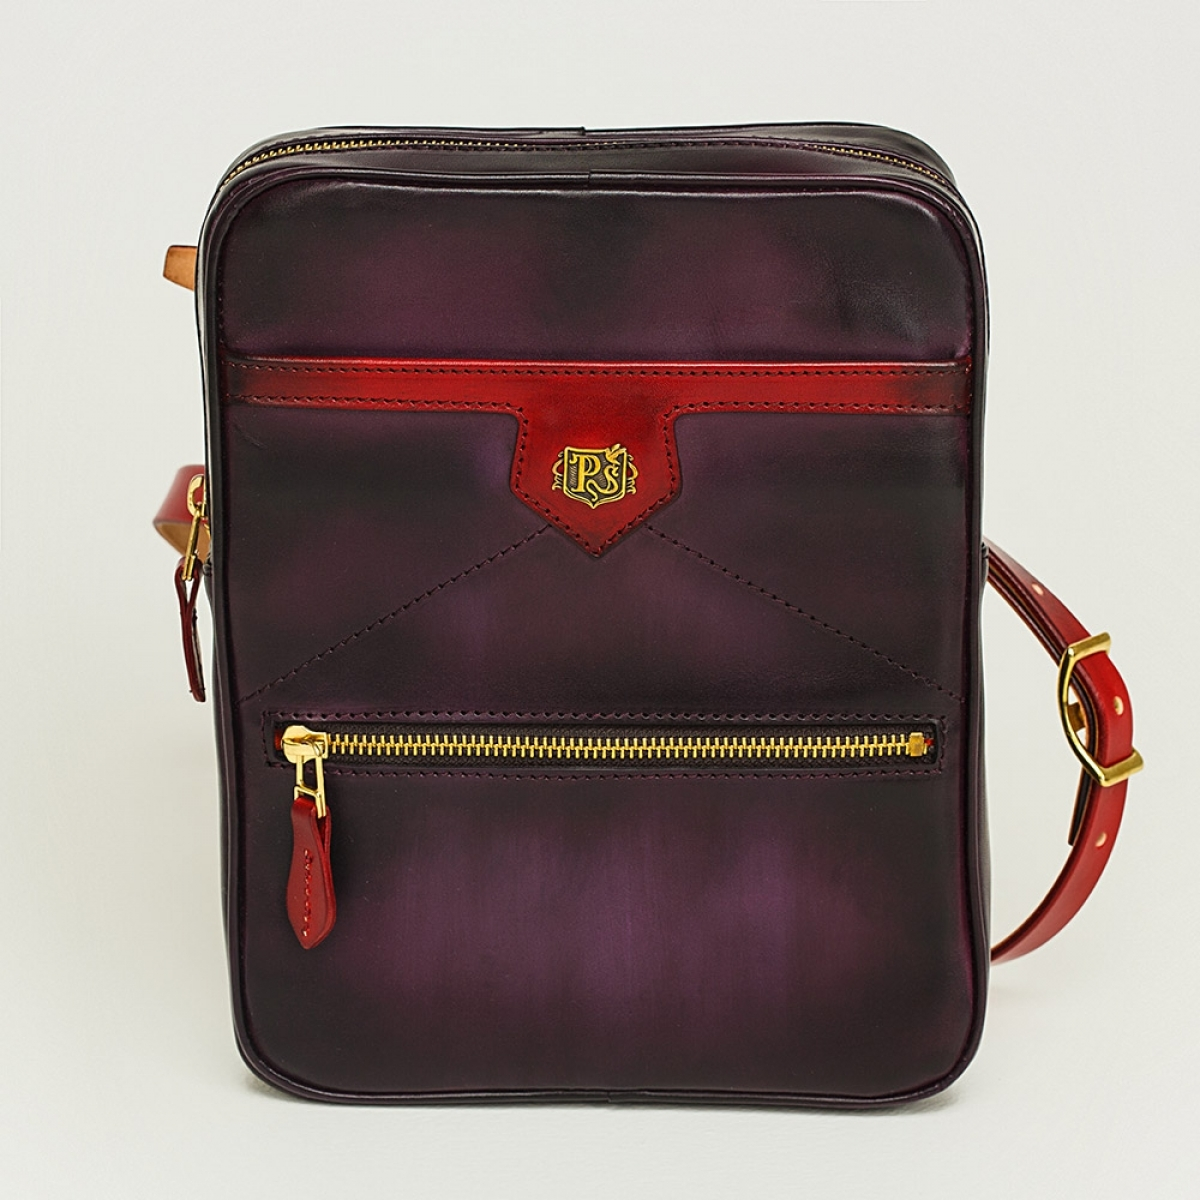 Crossbody bag MEZZO red currant & plum wine